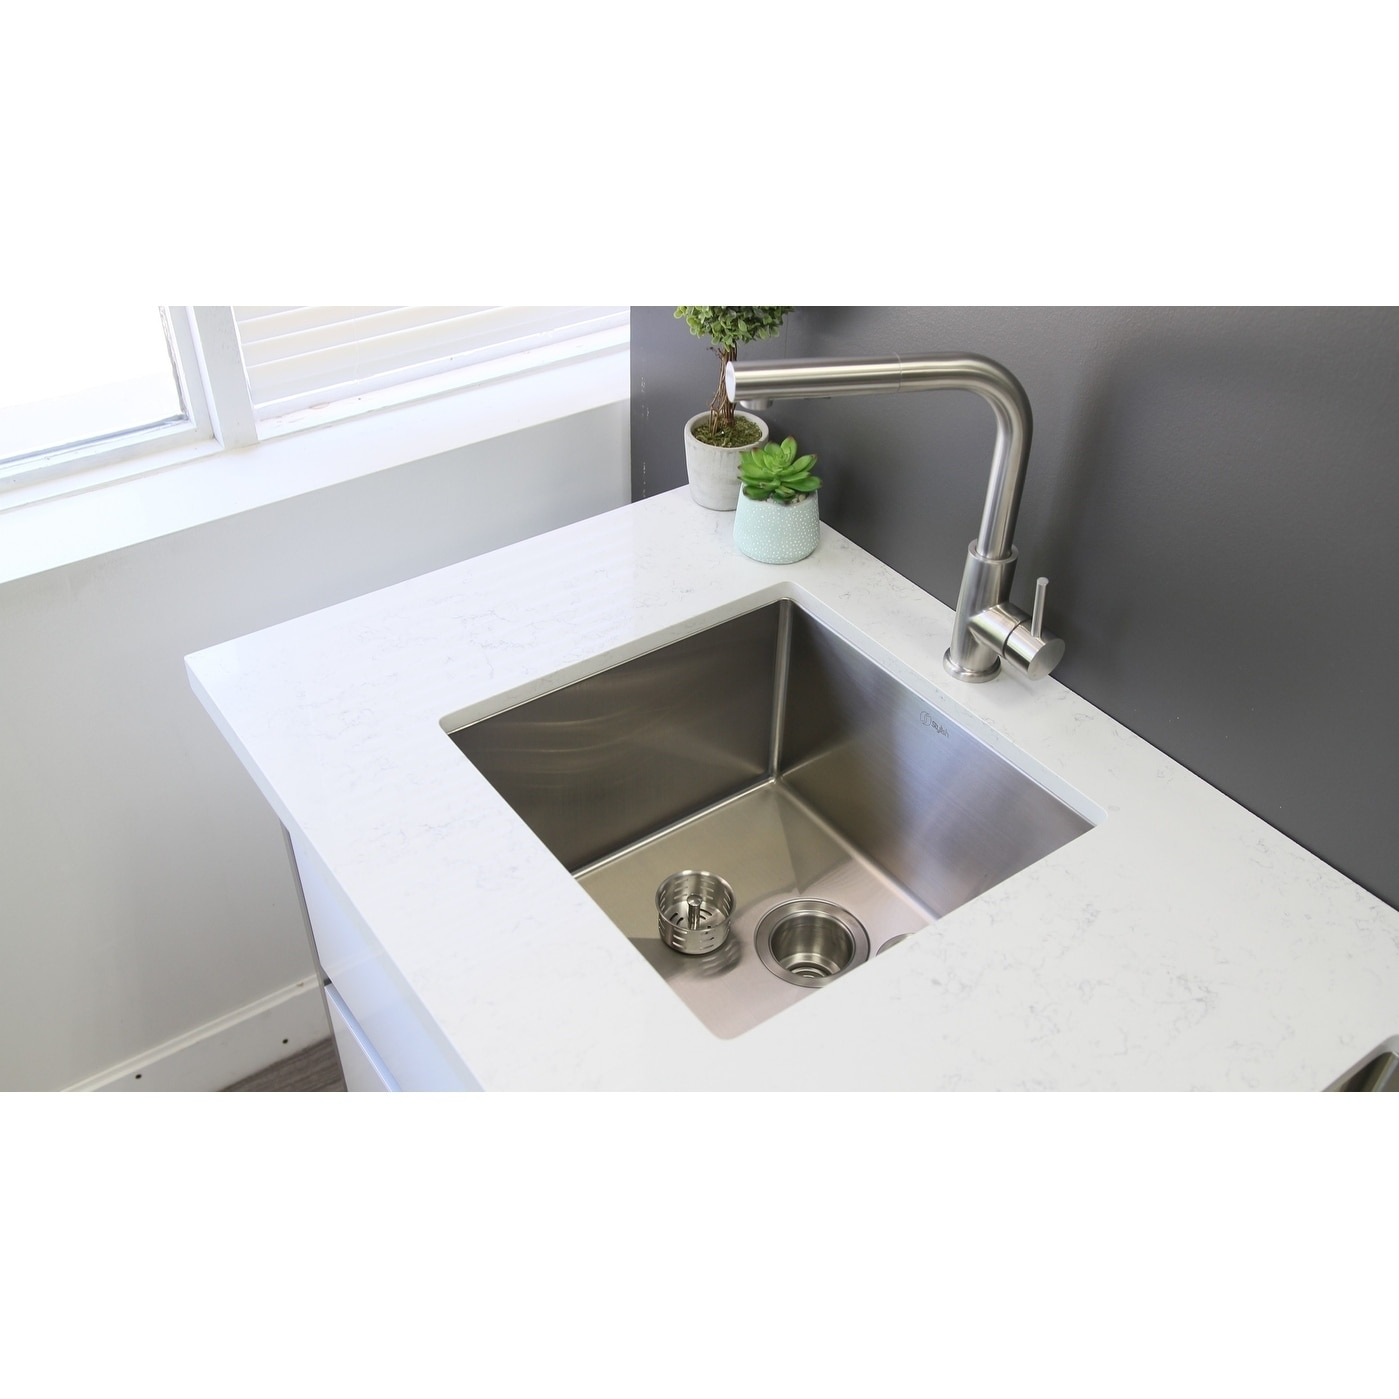 Stylish 19 Inch Single Bowl Undermount 18 Gauge Stainless Steel Kitchen Sink S 308 Aqua On Free Shipping Today 19977412